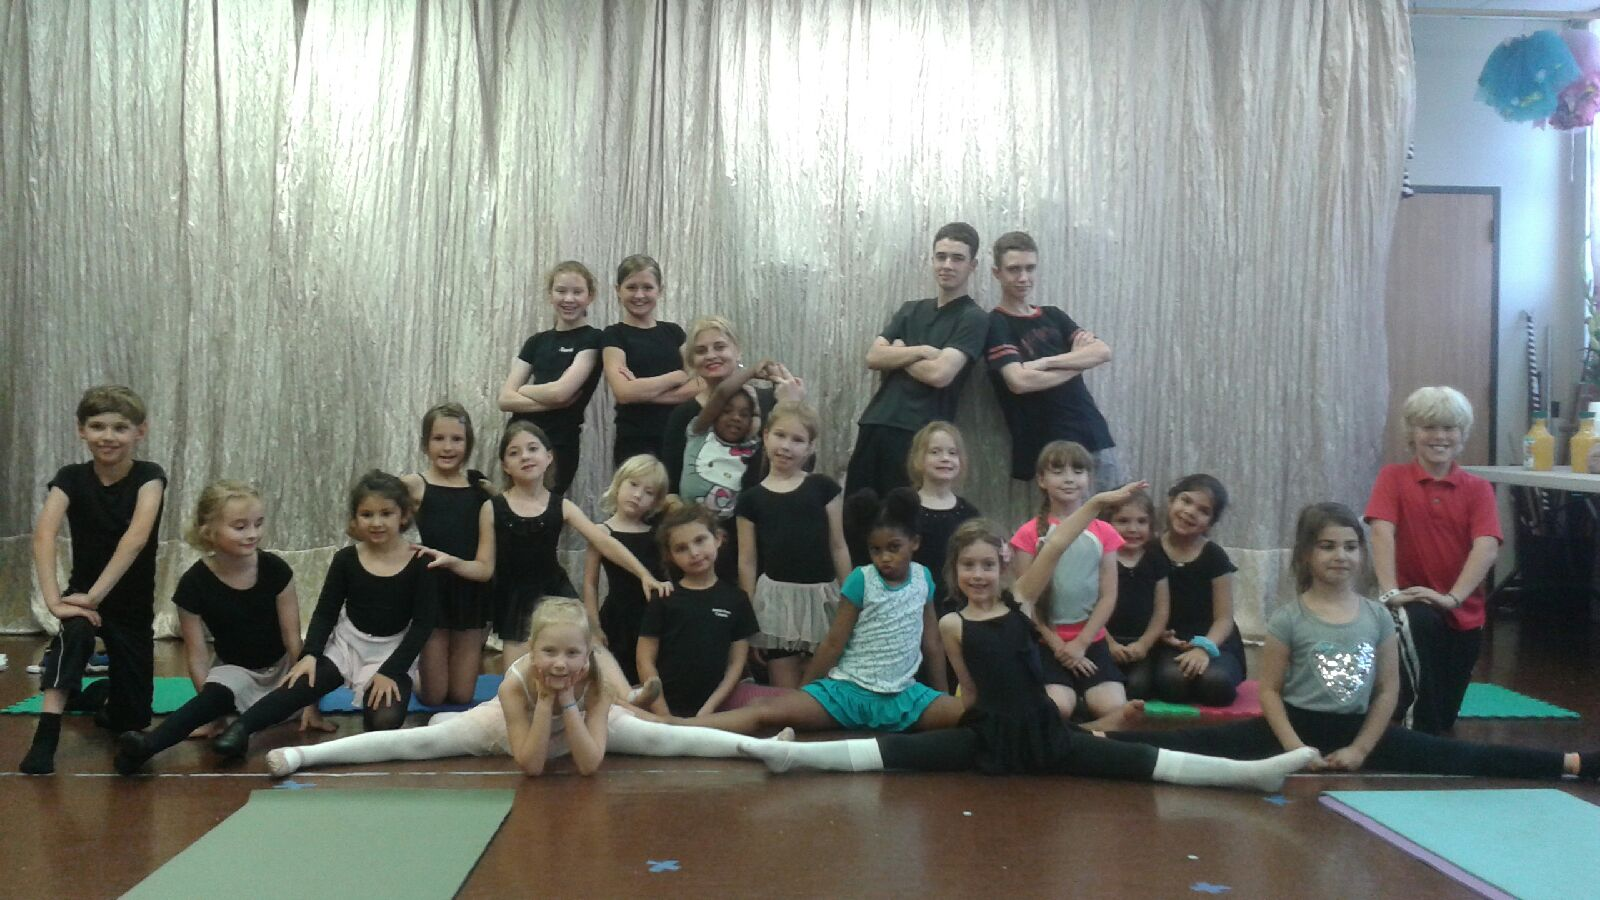 At Sunrise International Dance Company's summer camp, children learn dances from a variety of cultures, as well as gymnastics.